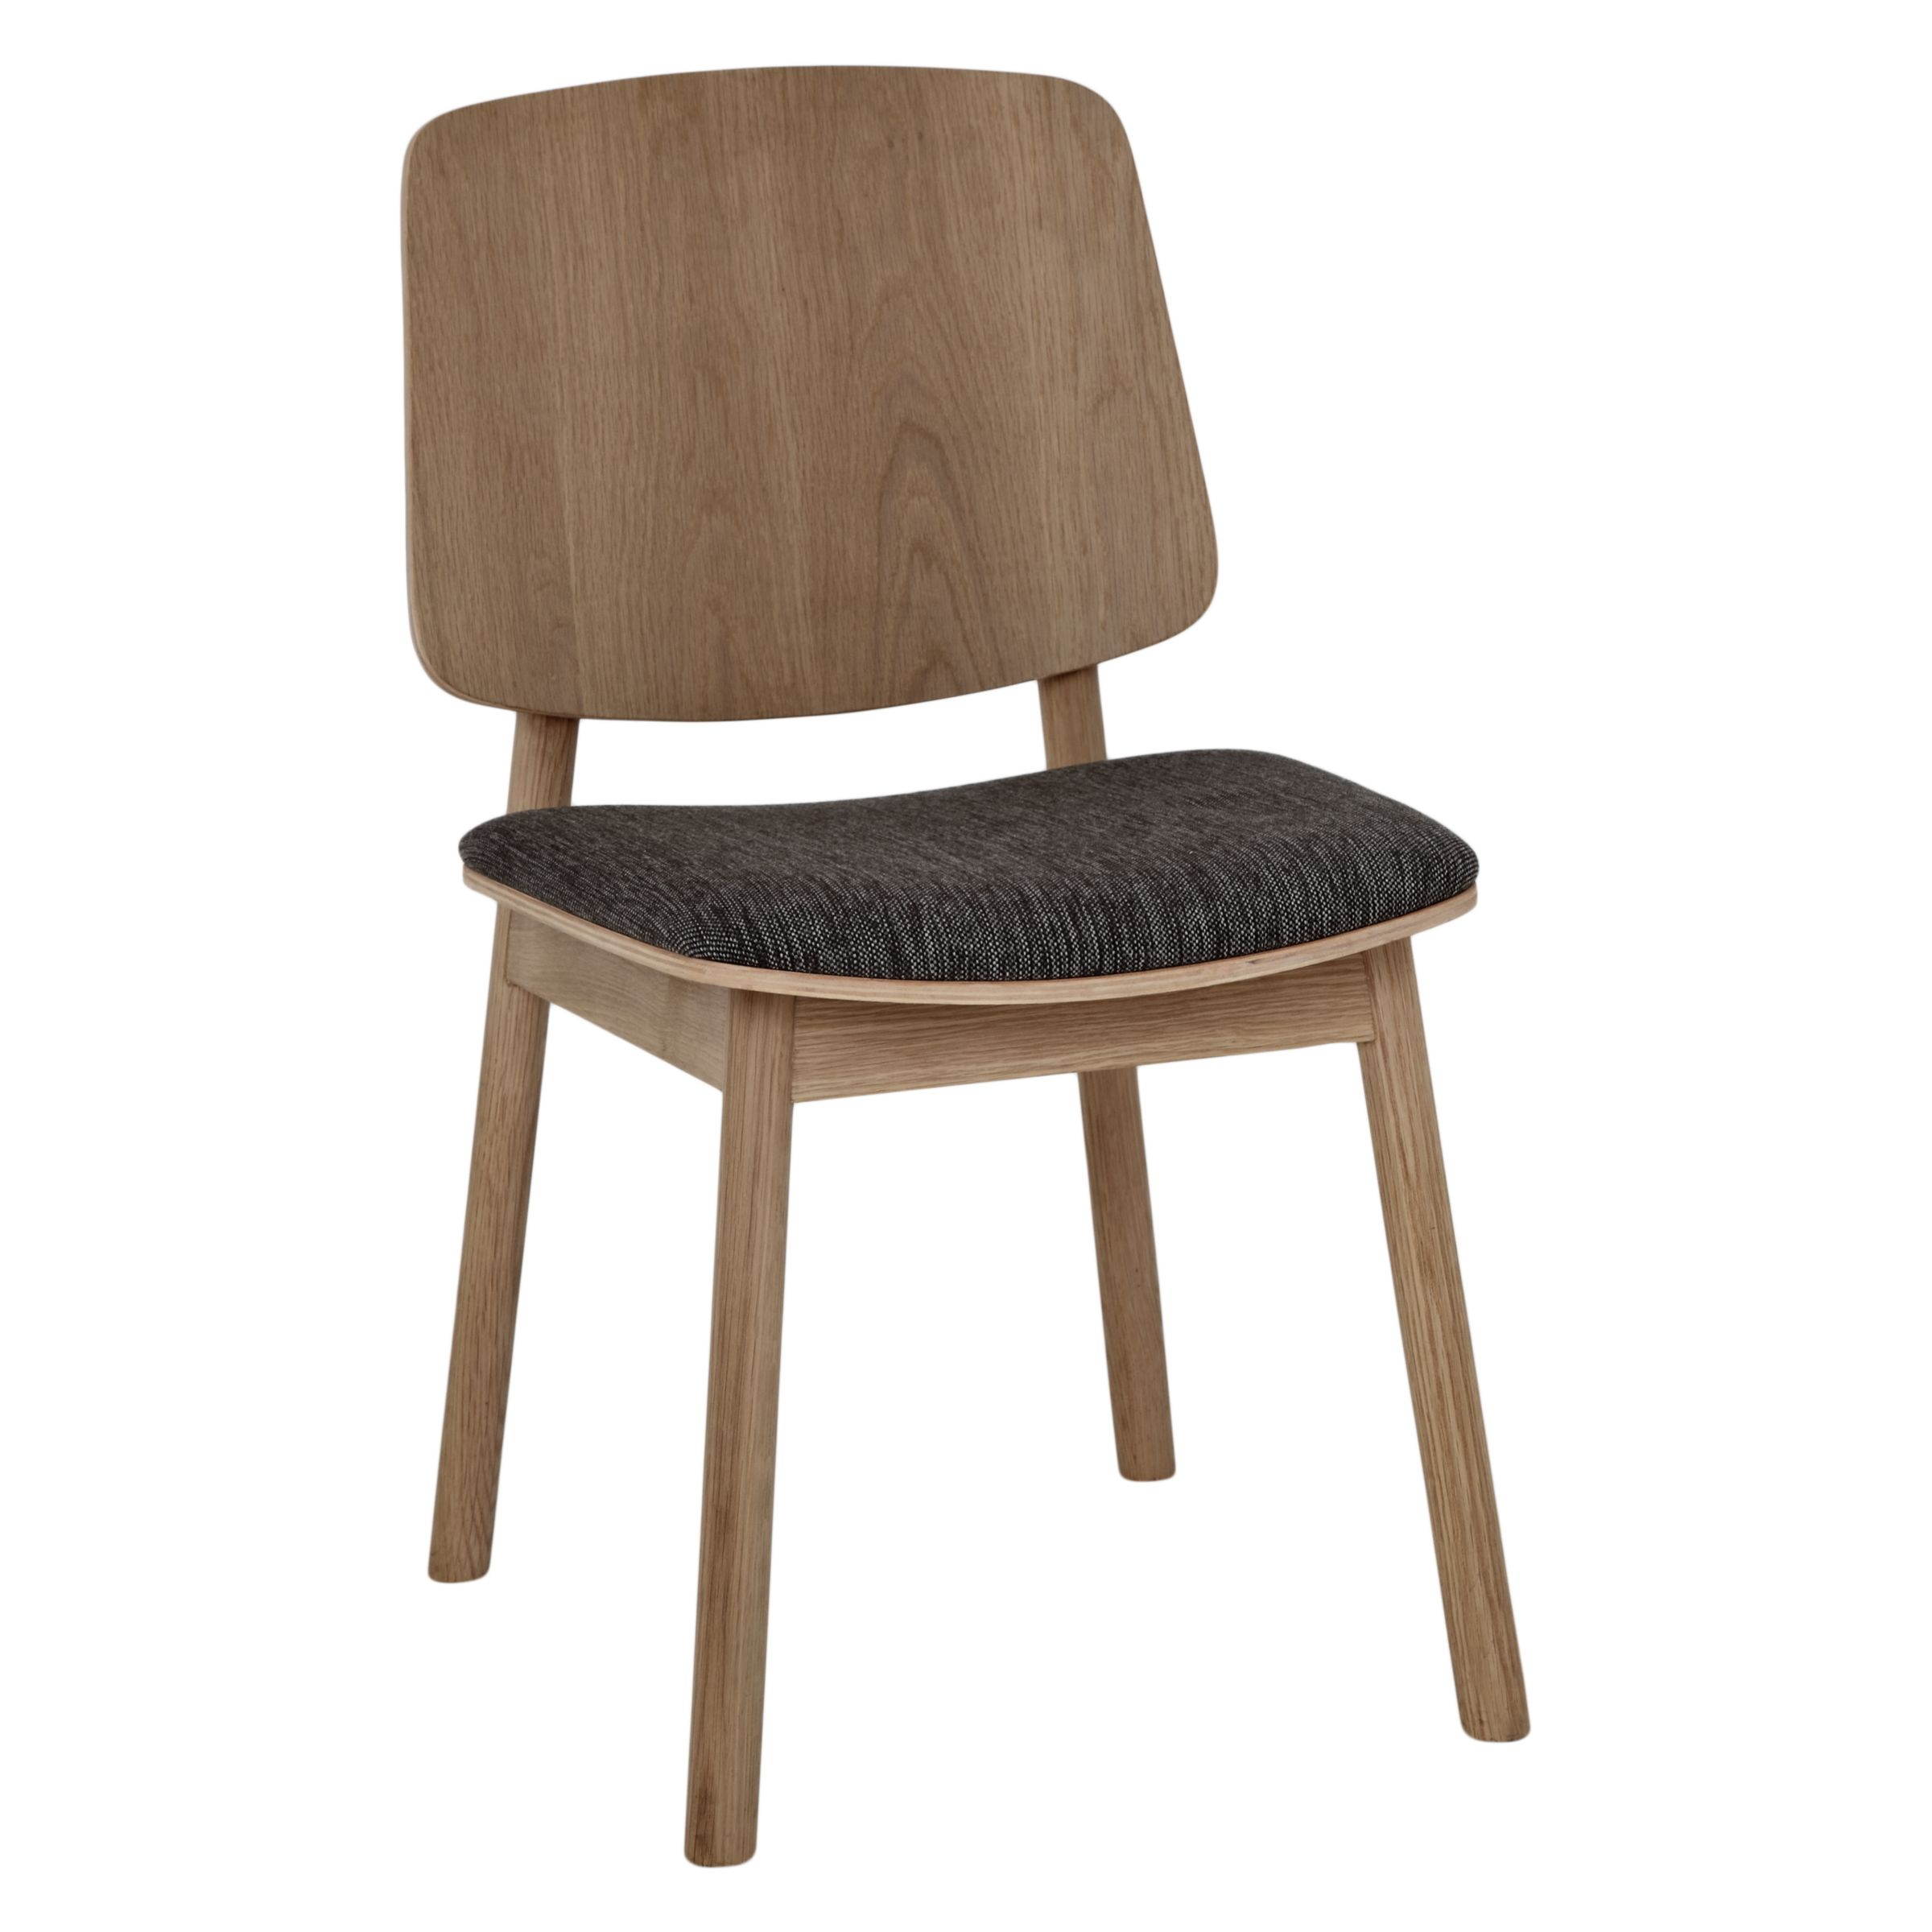 Says Who for John Lewis Says Who for John Lewis Why Wood Upholstered Dining Chair